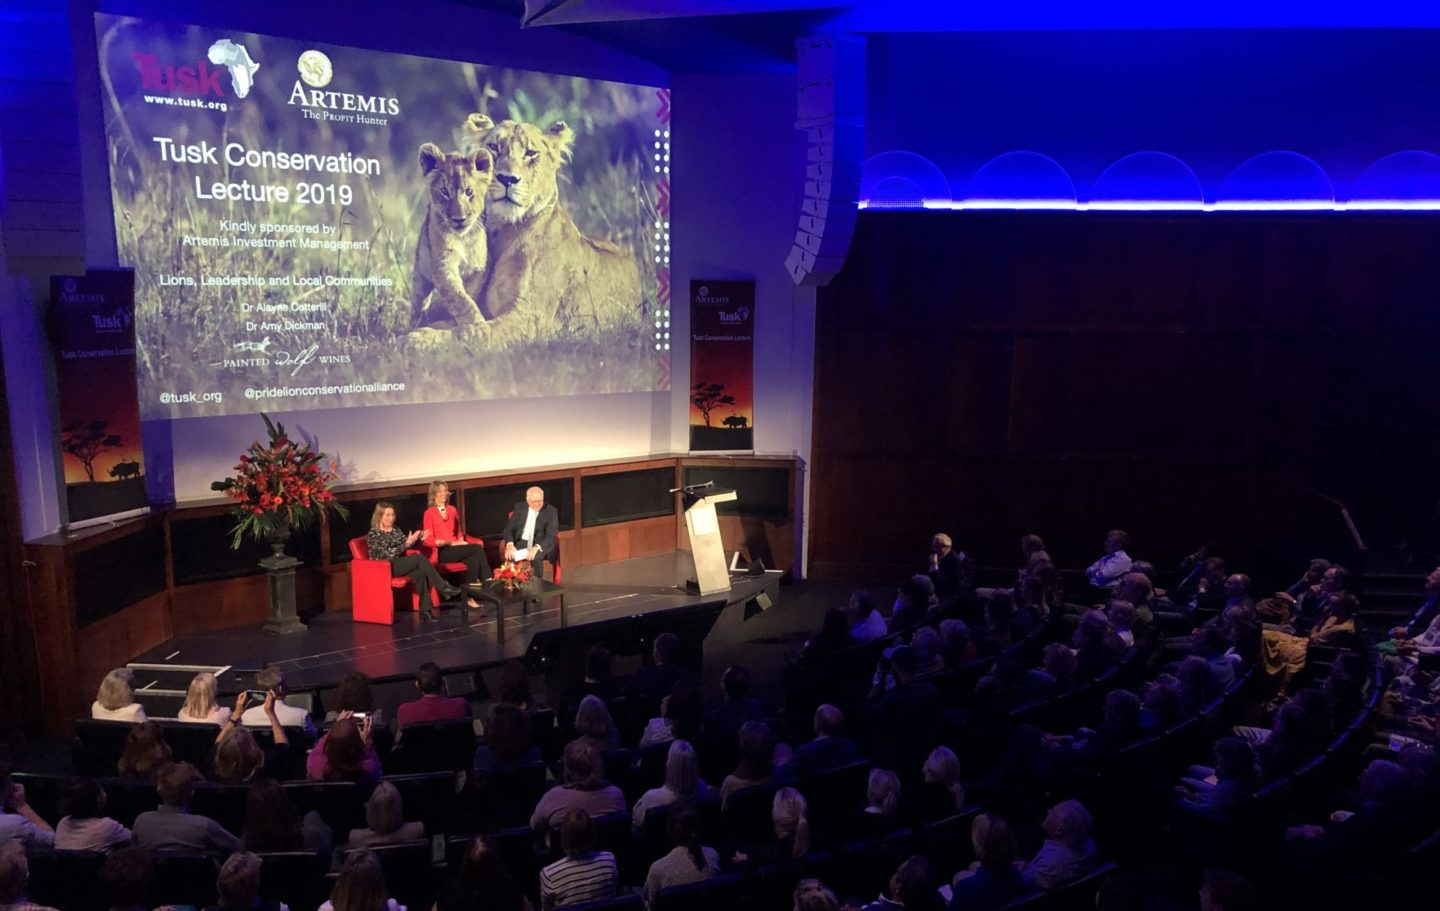 Tusk Conservation Lecture 2019